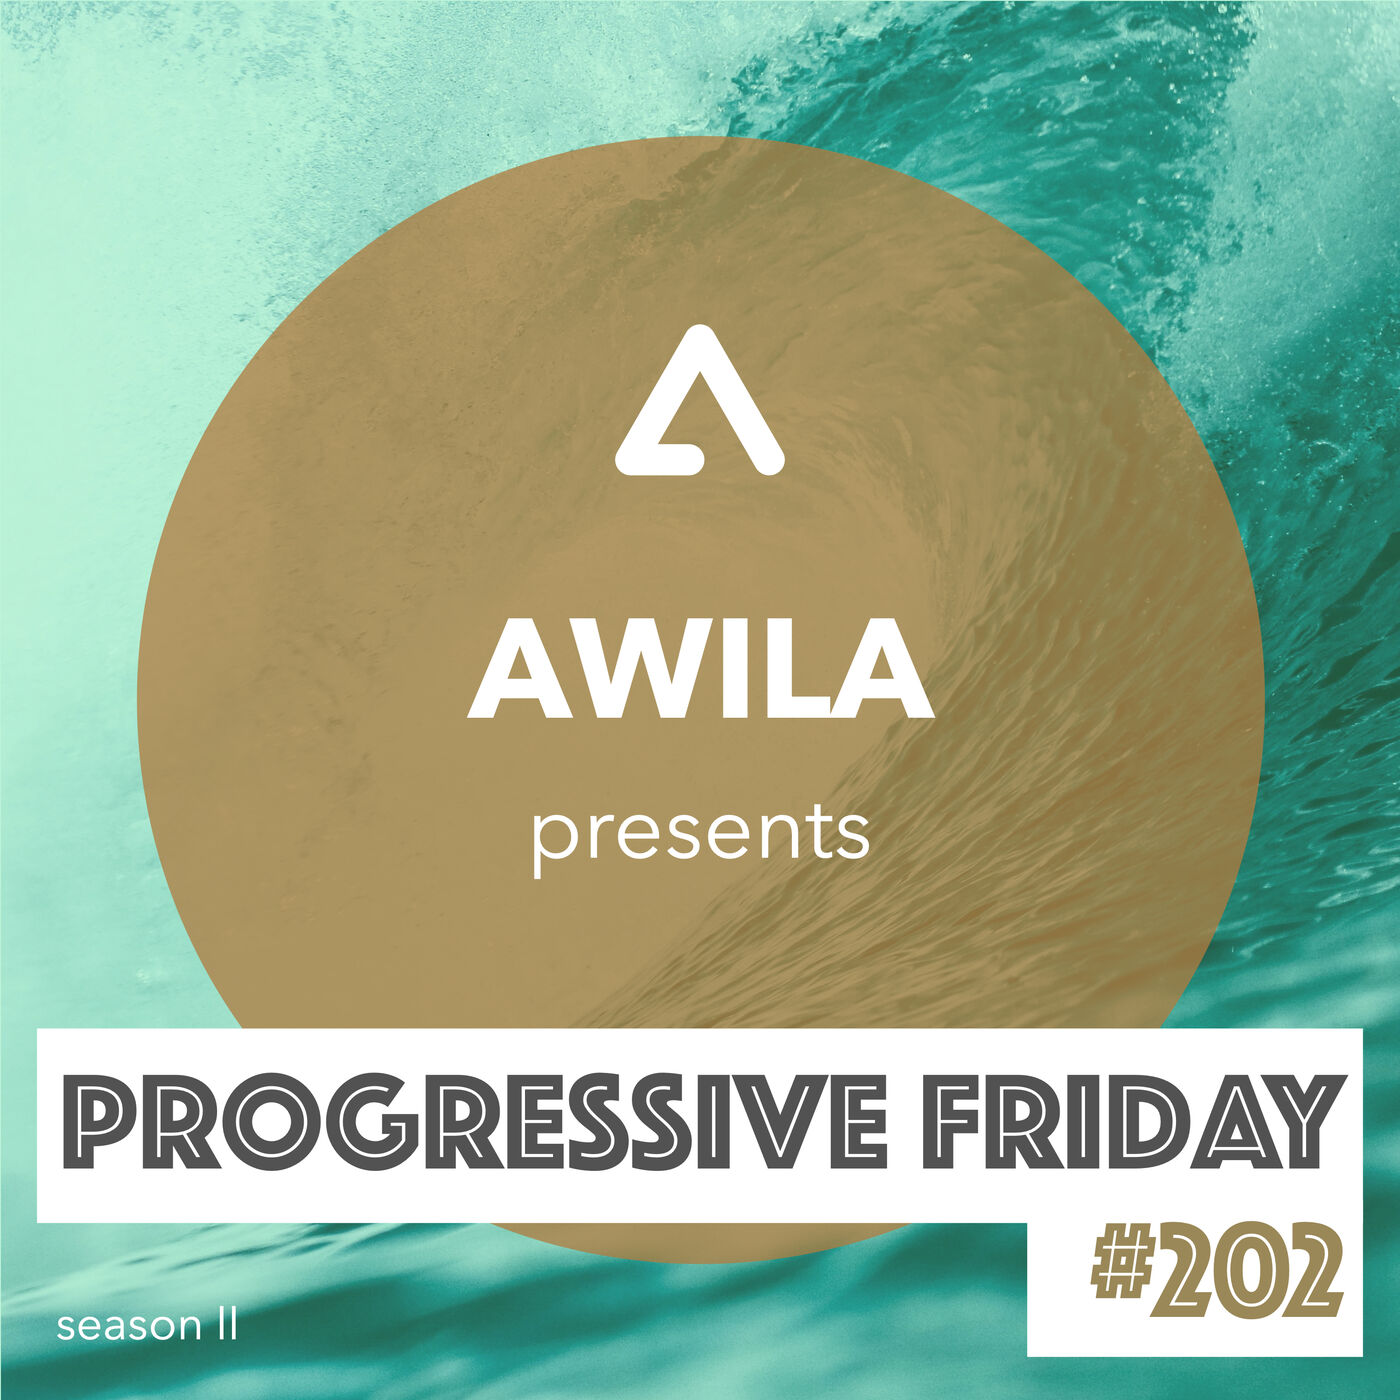 Progressive Friday #202